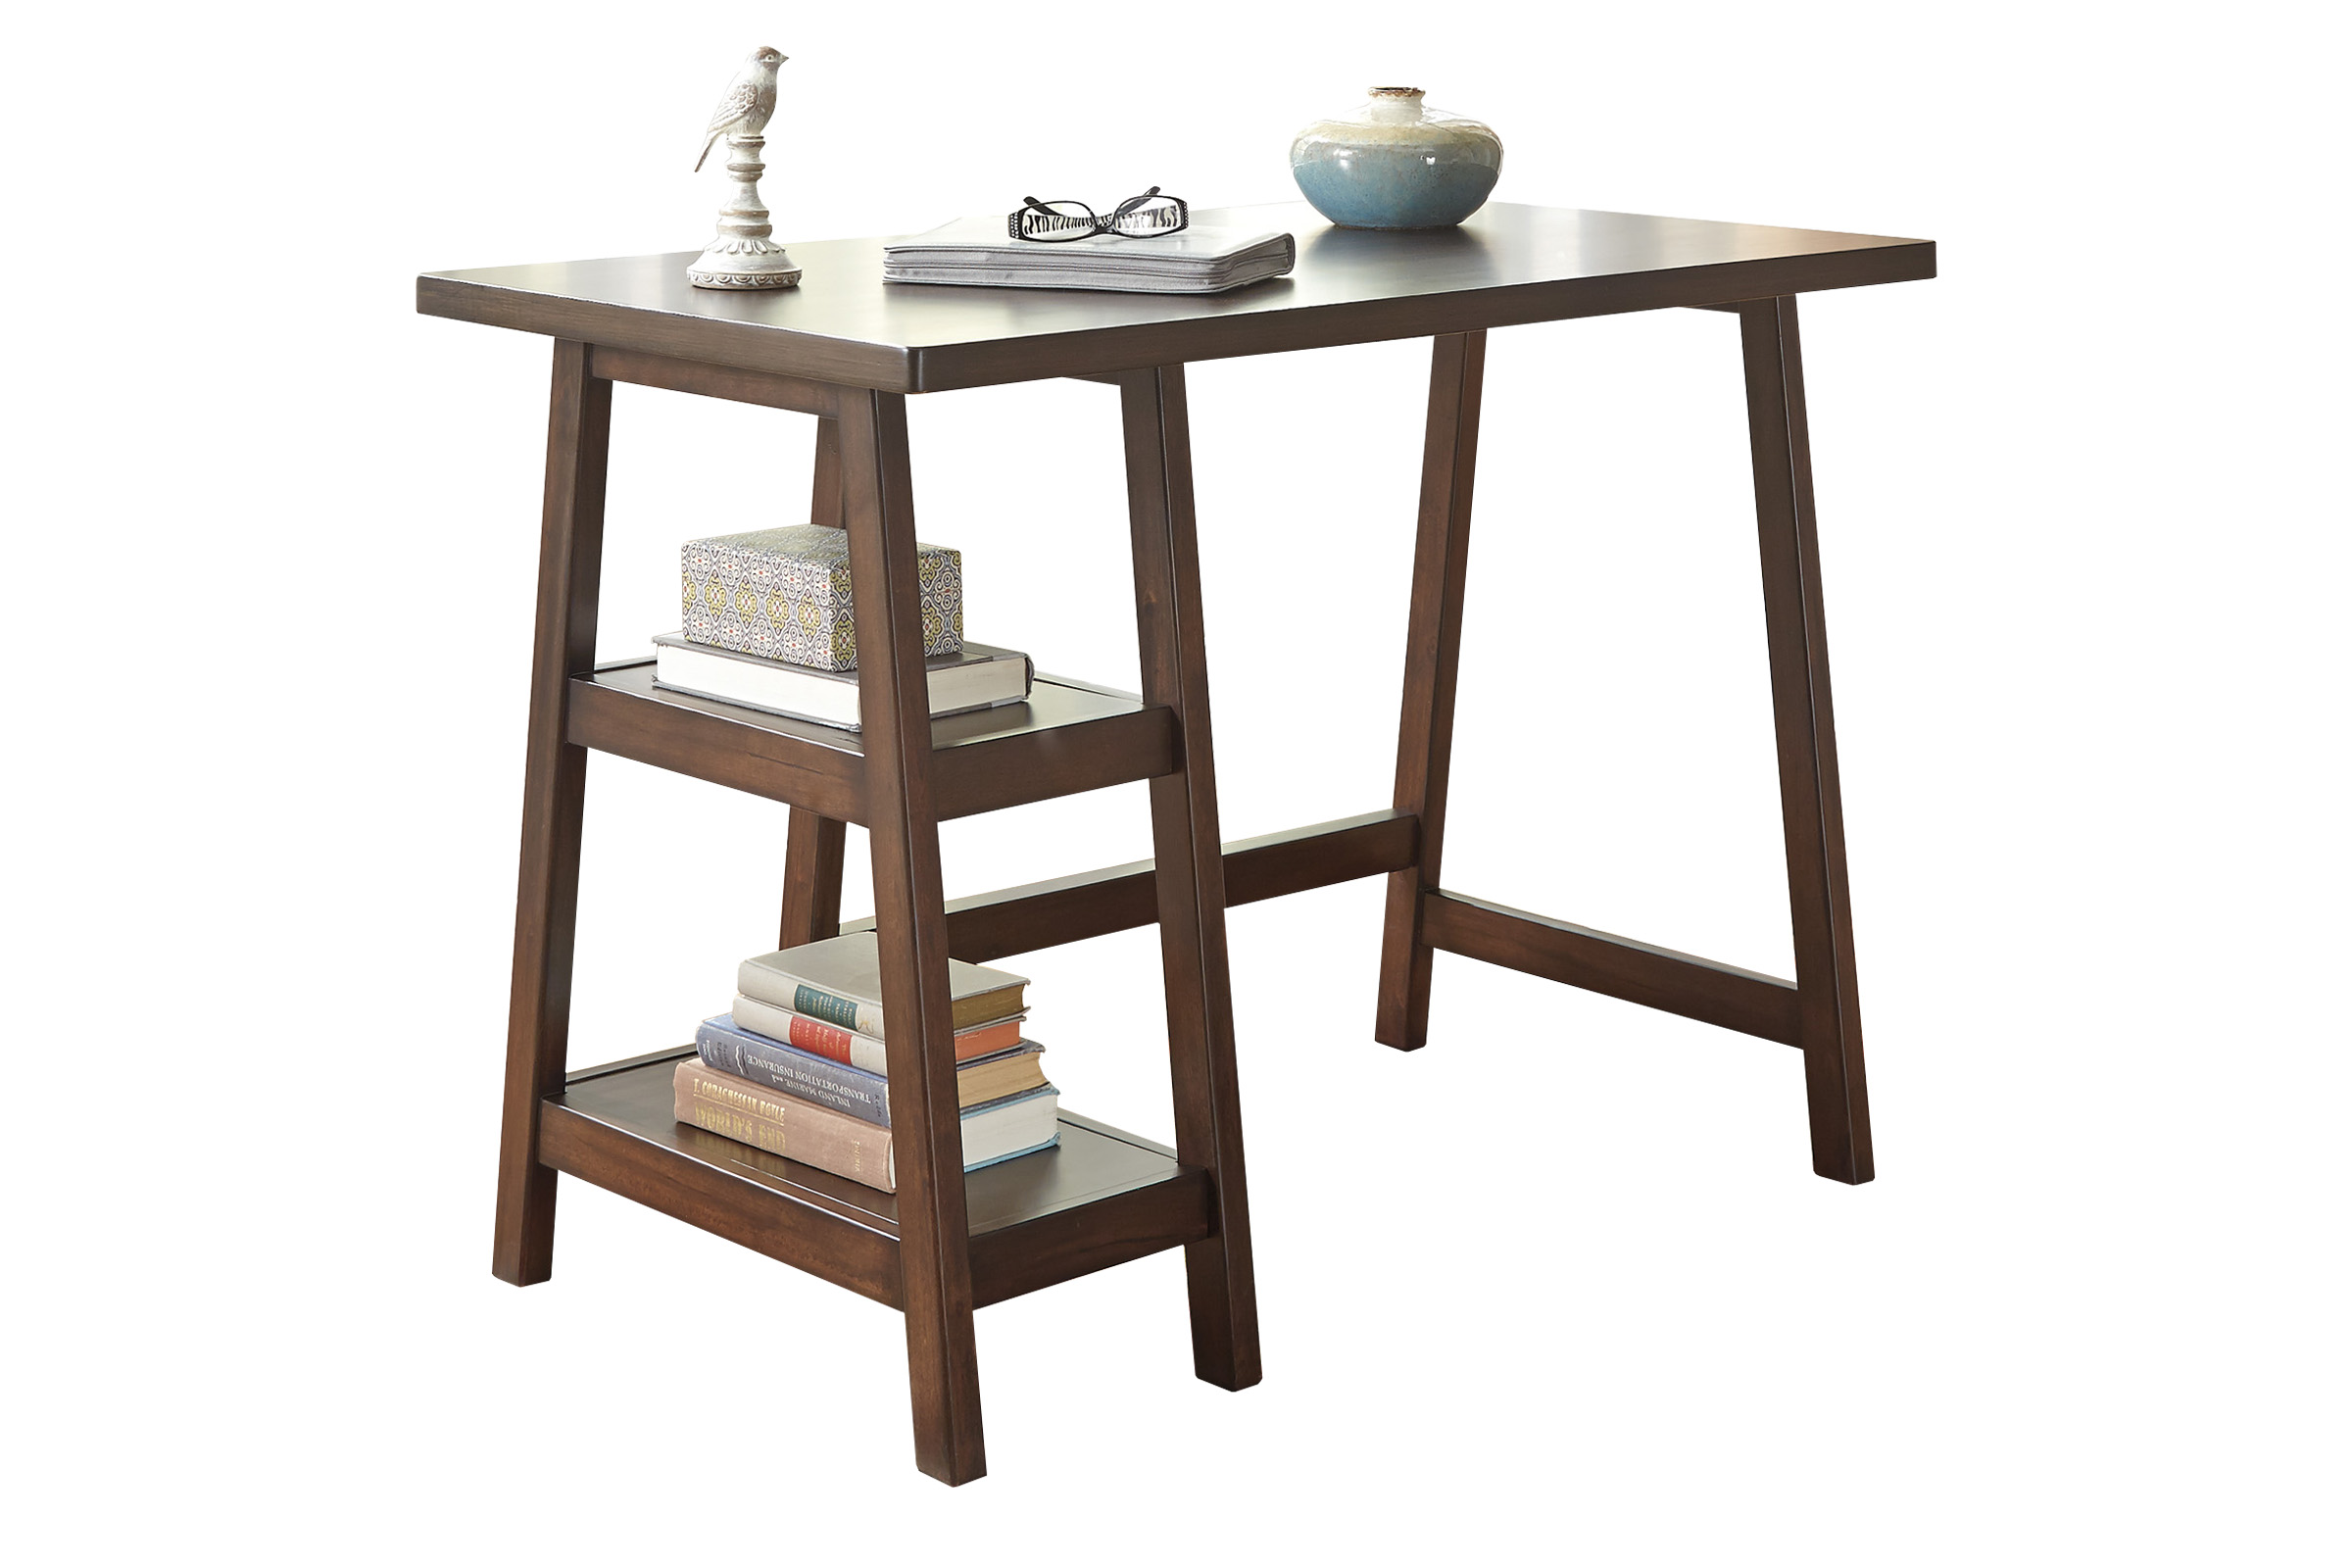 home office small desk h309 10 save 14999 online only 17999 free shipping baybrin rustic brown home office small